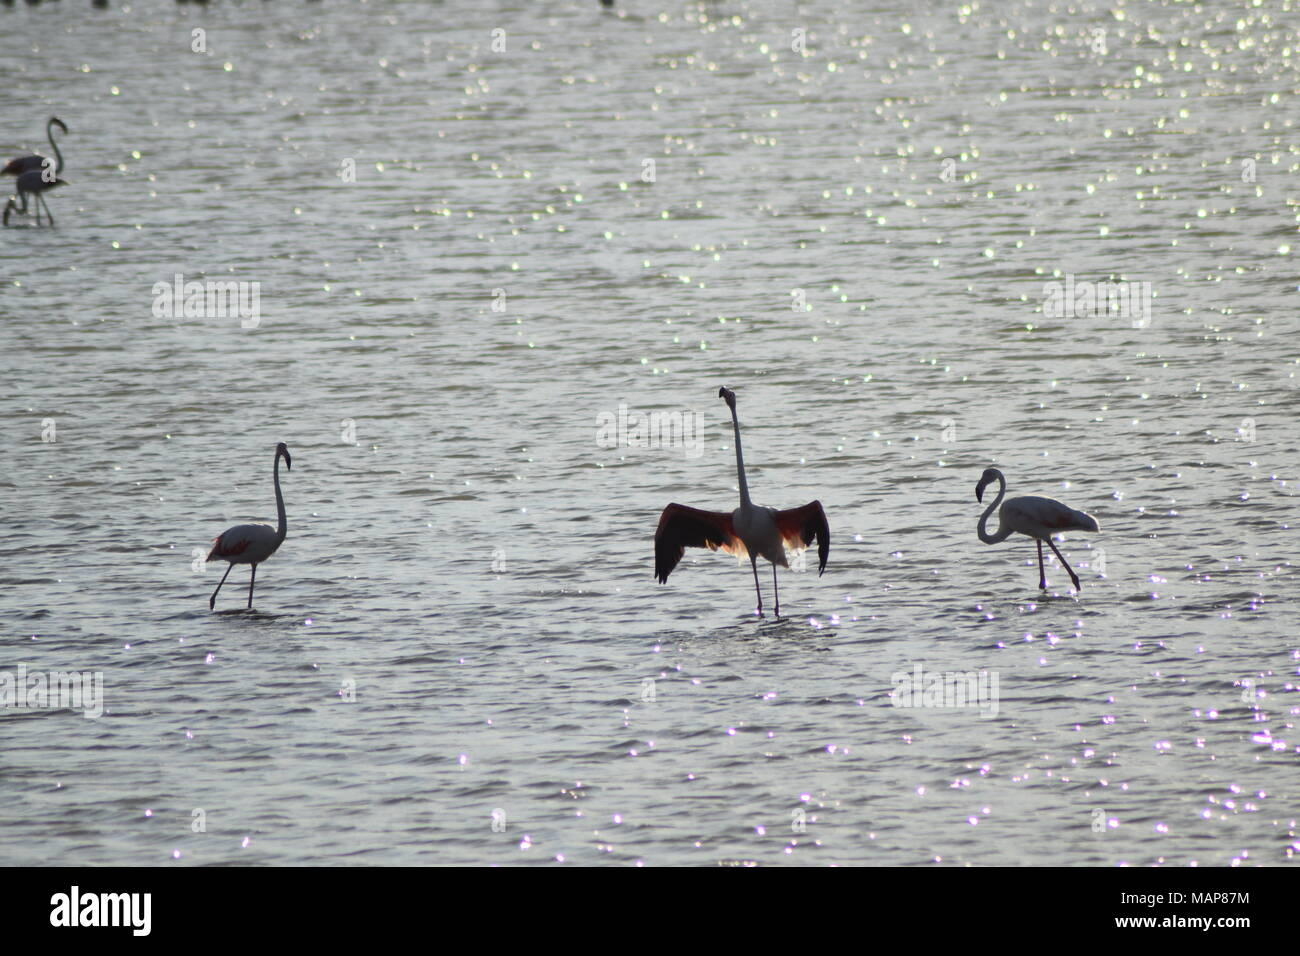 Flamingos in Italy basking in the water - Stock Image